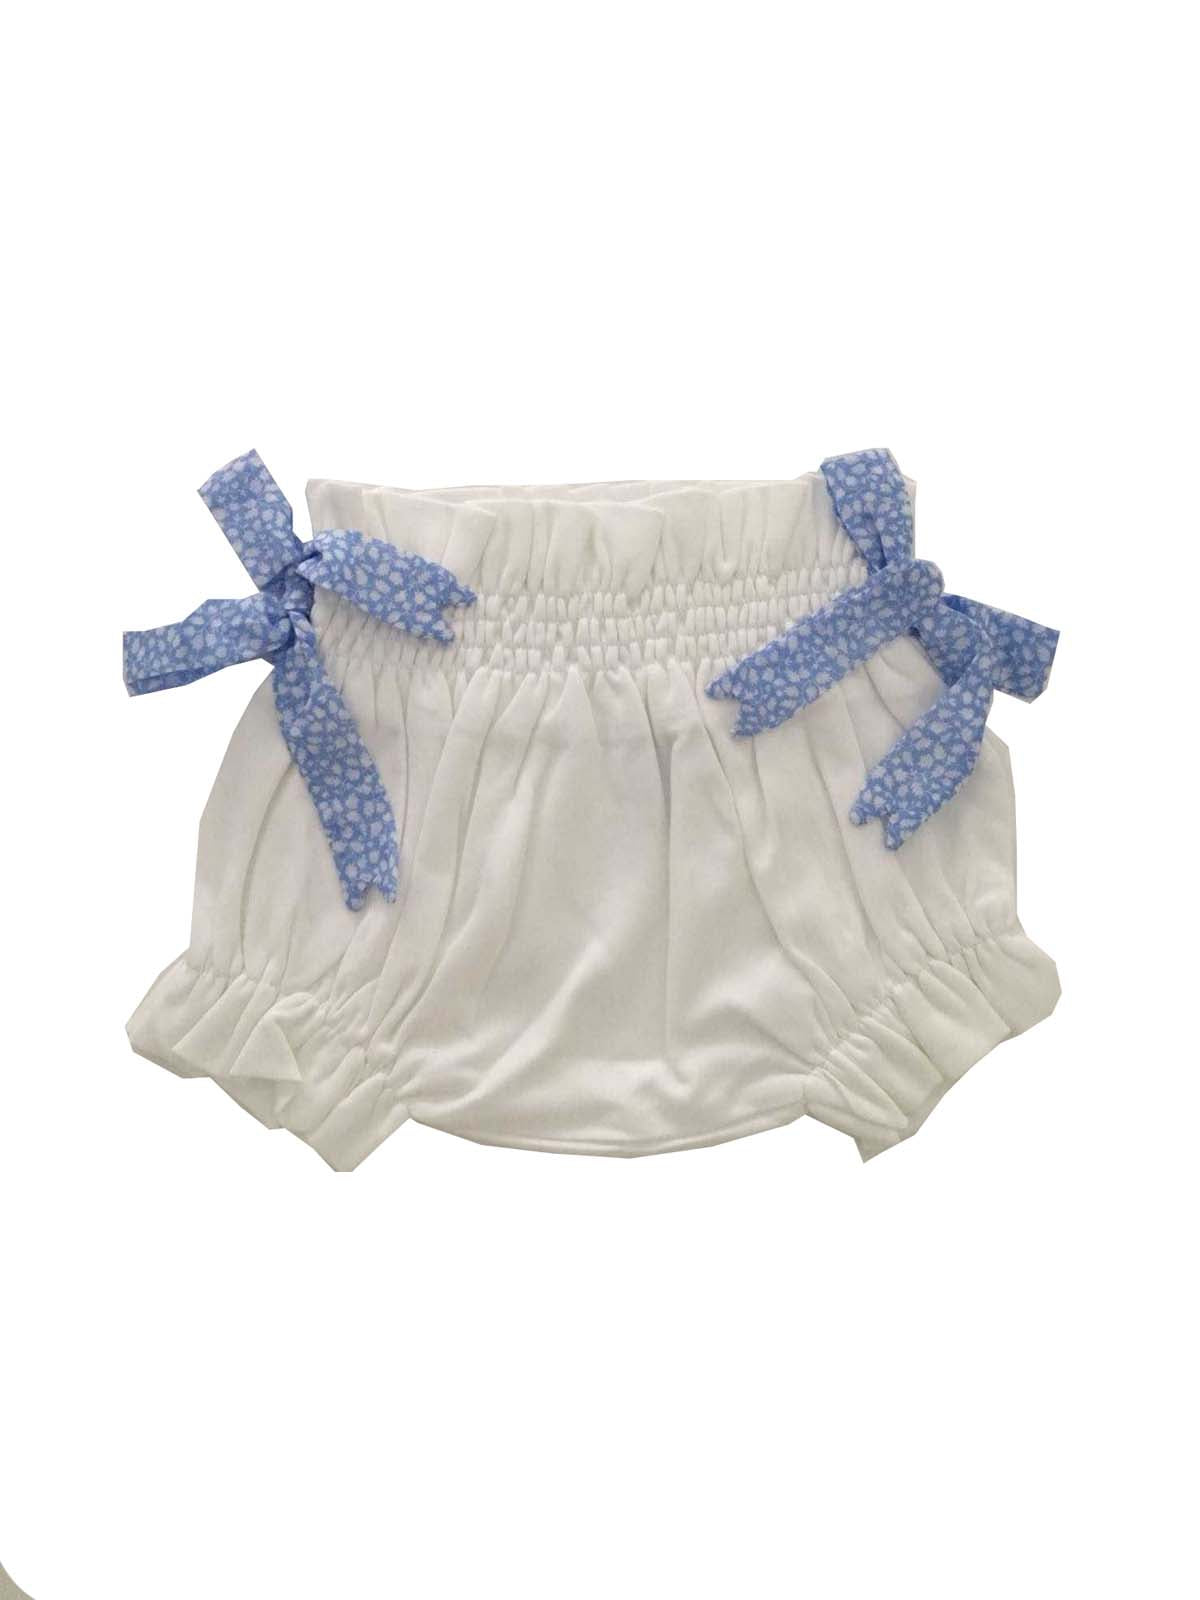 Baby Culotte Infant and toddler; blue liberty flowers